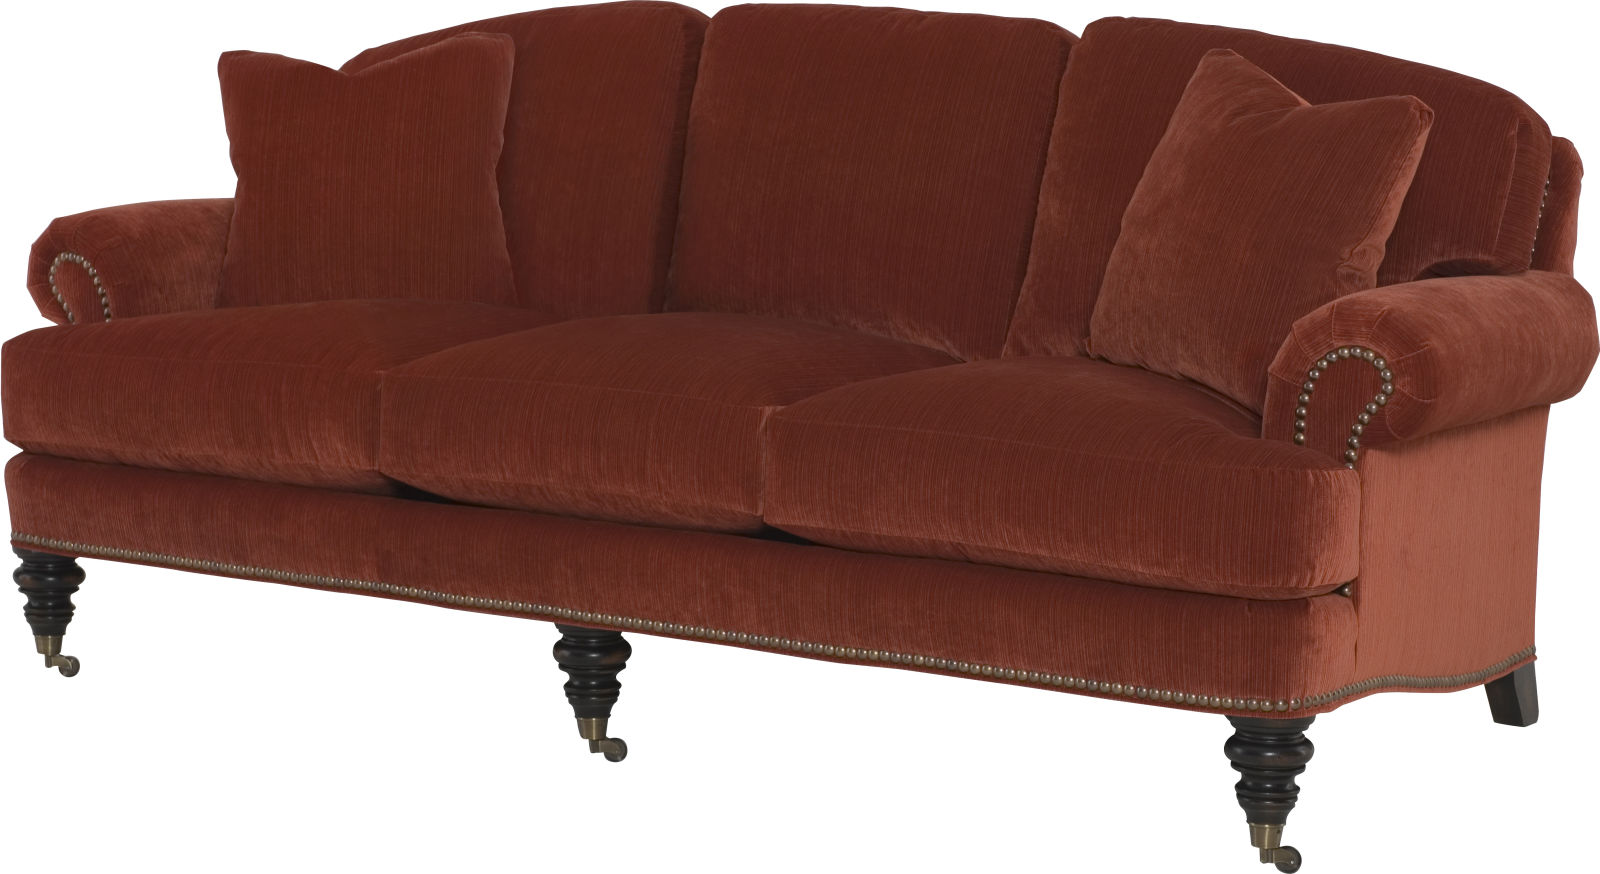 wesley hall sofas istikbal sofa bed uk furniture hickory nc product page 1502